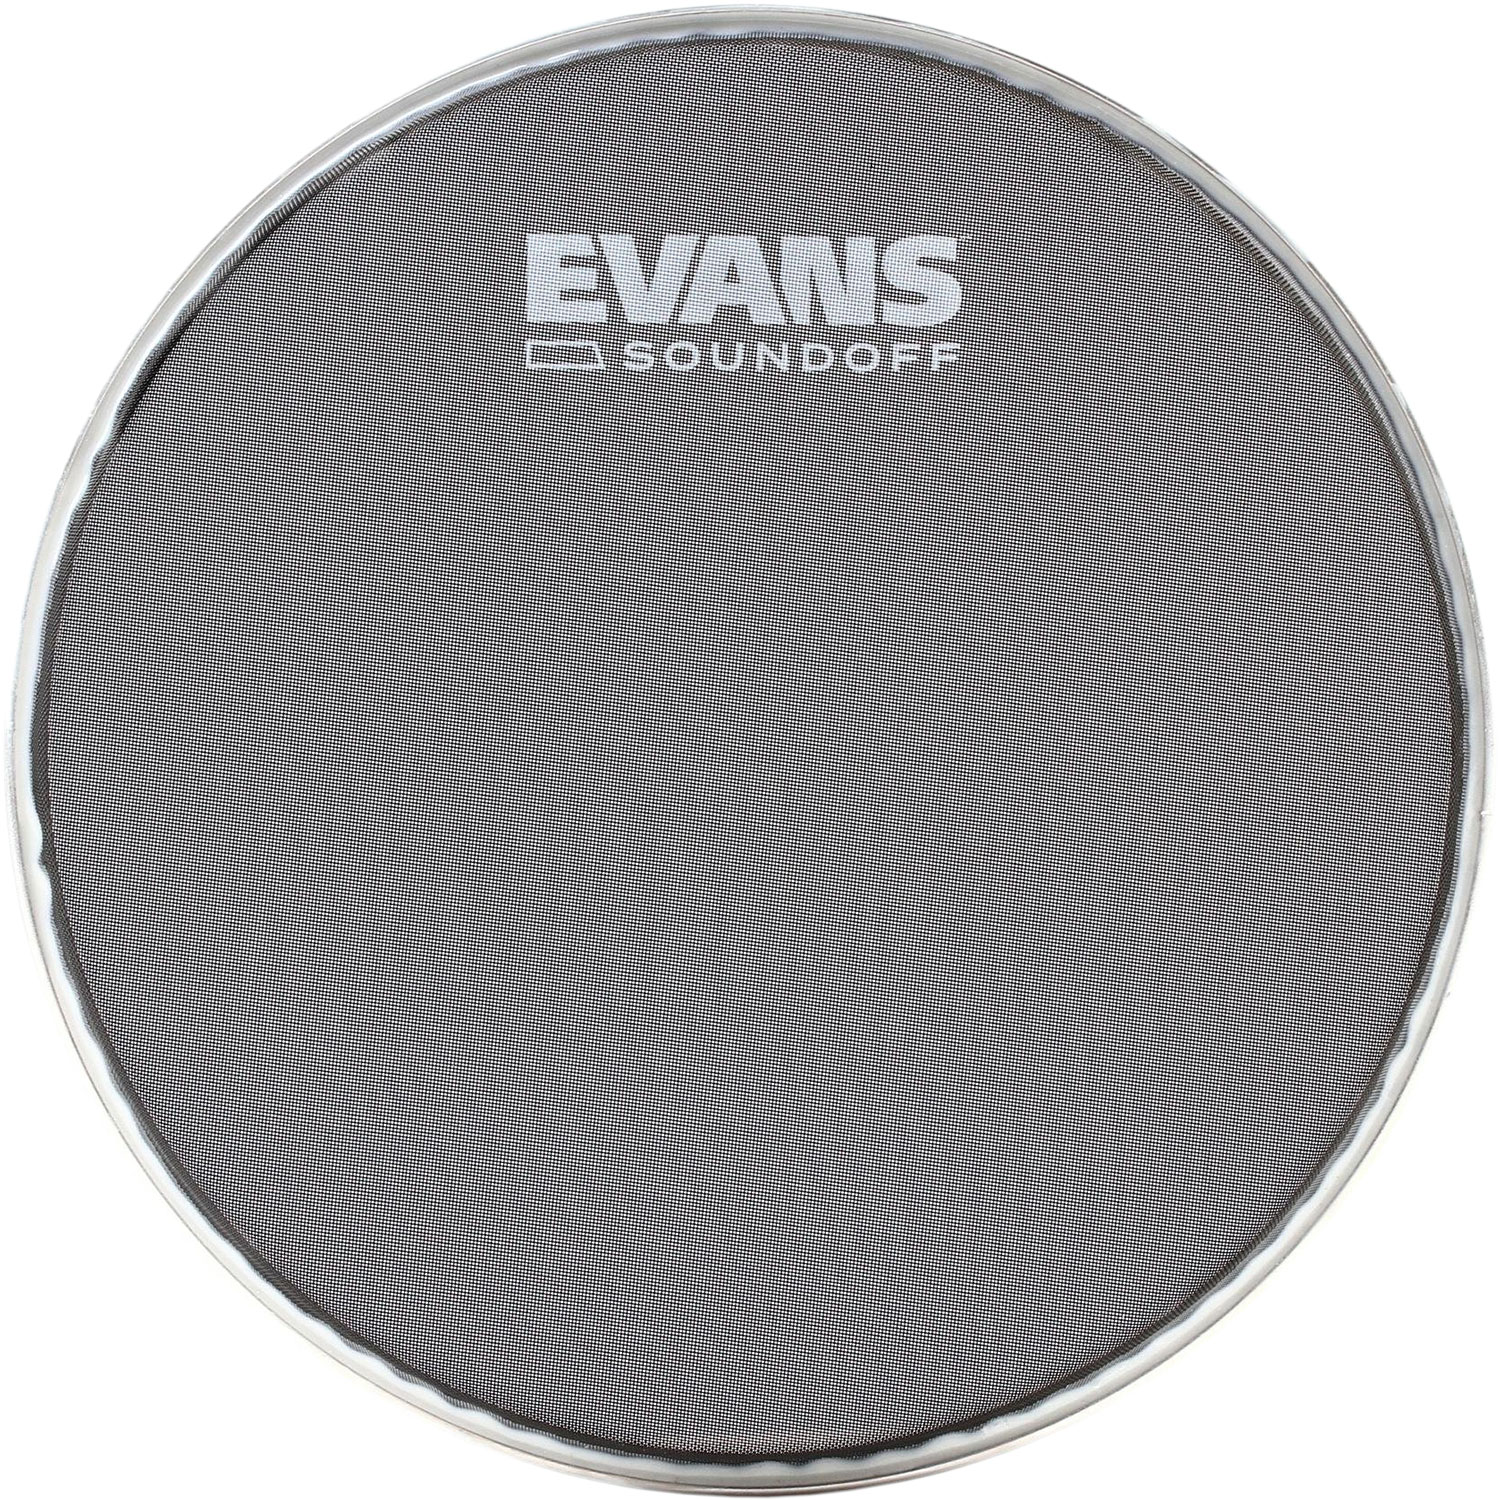 "Evans 10"" SoundOff Mesh Drum Head"